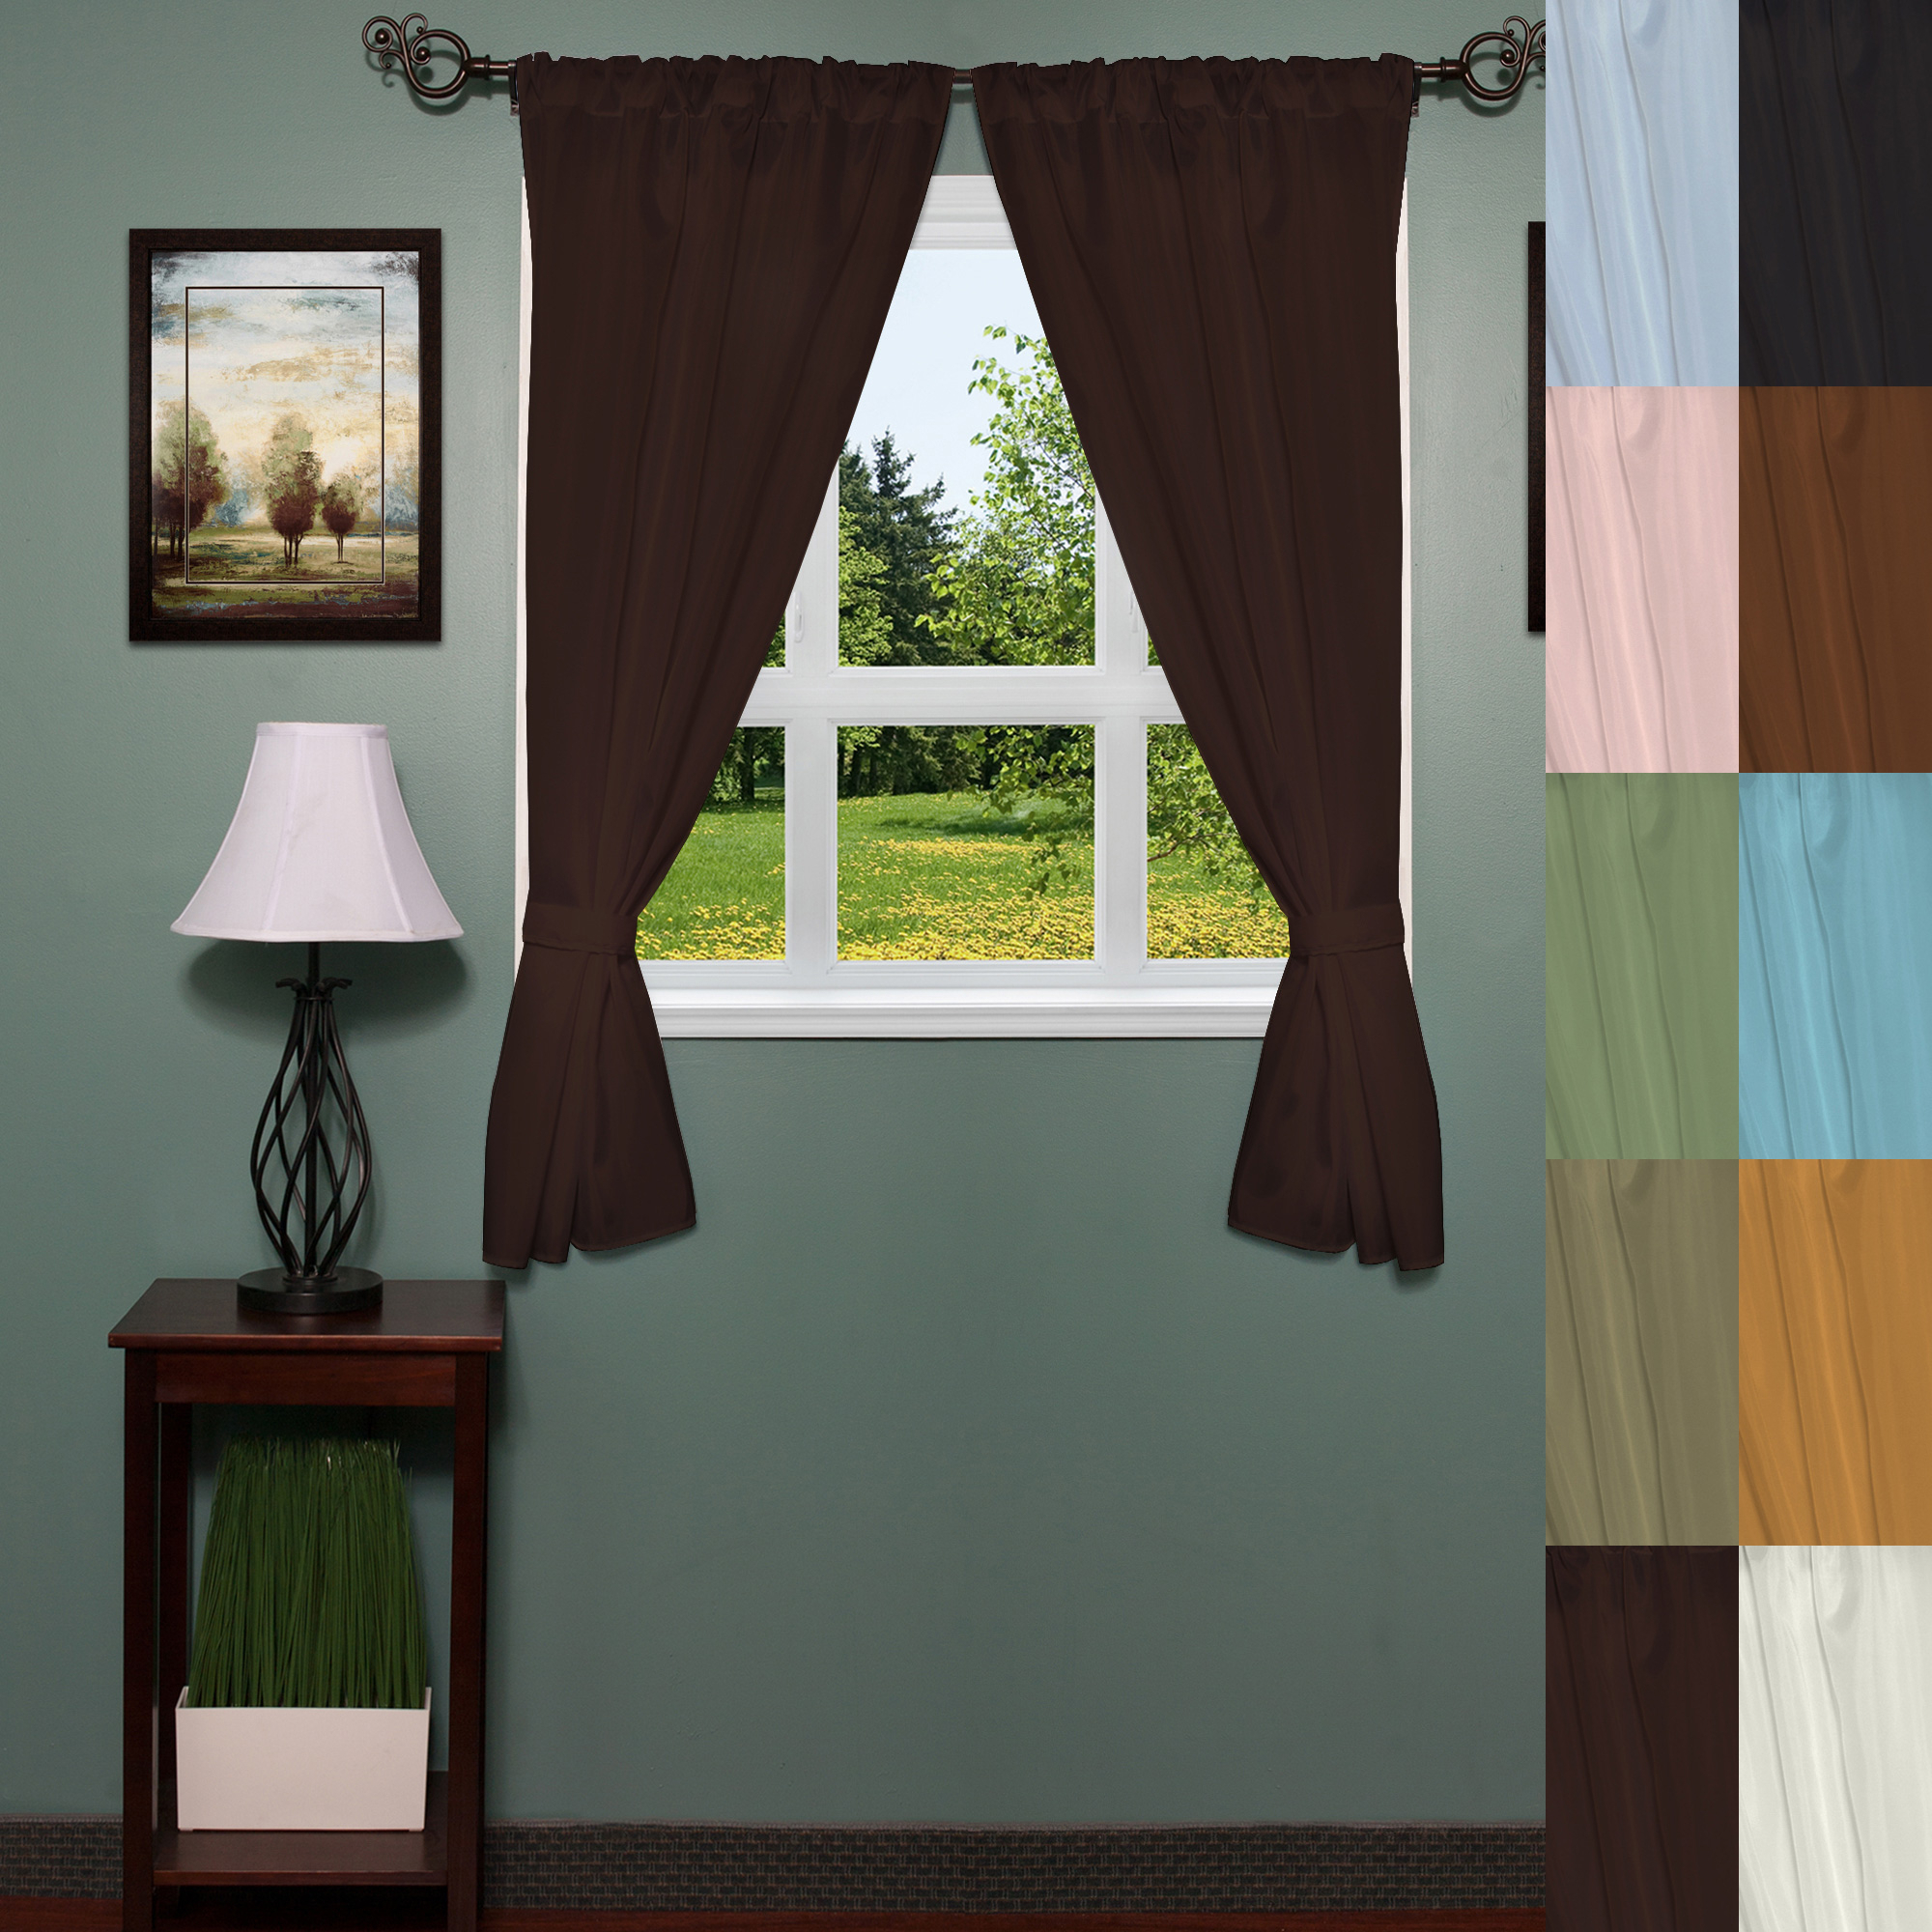 """Classic Hotel Quality Water Resistant Fabric Curtains Set With Tiebacks Throughout Most Current Details About Classic Hotel Quality 36""""w X 54""""l Fabric Bathroom Window Curtain Set W/tiebacks (View 2 of 20)"""